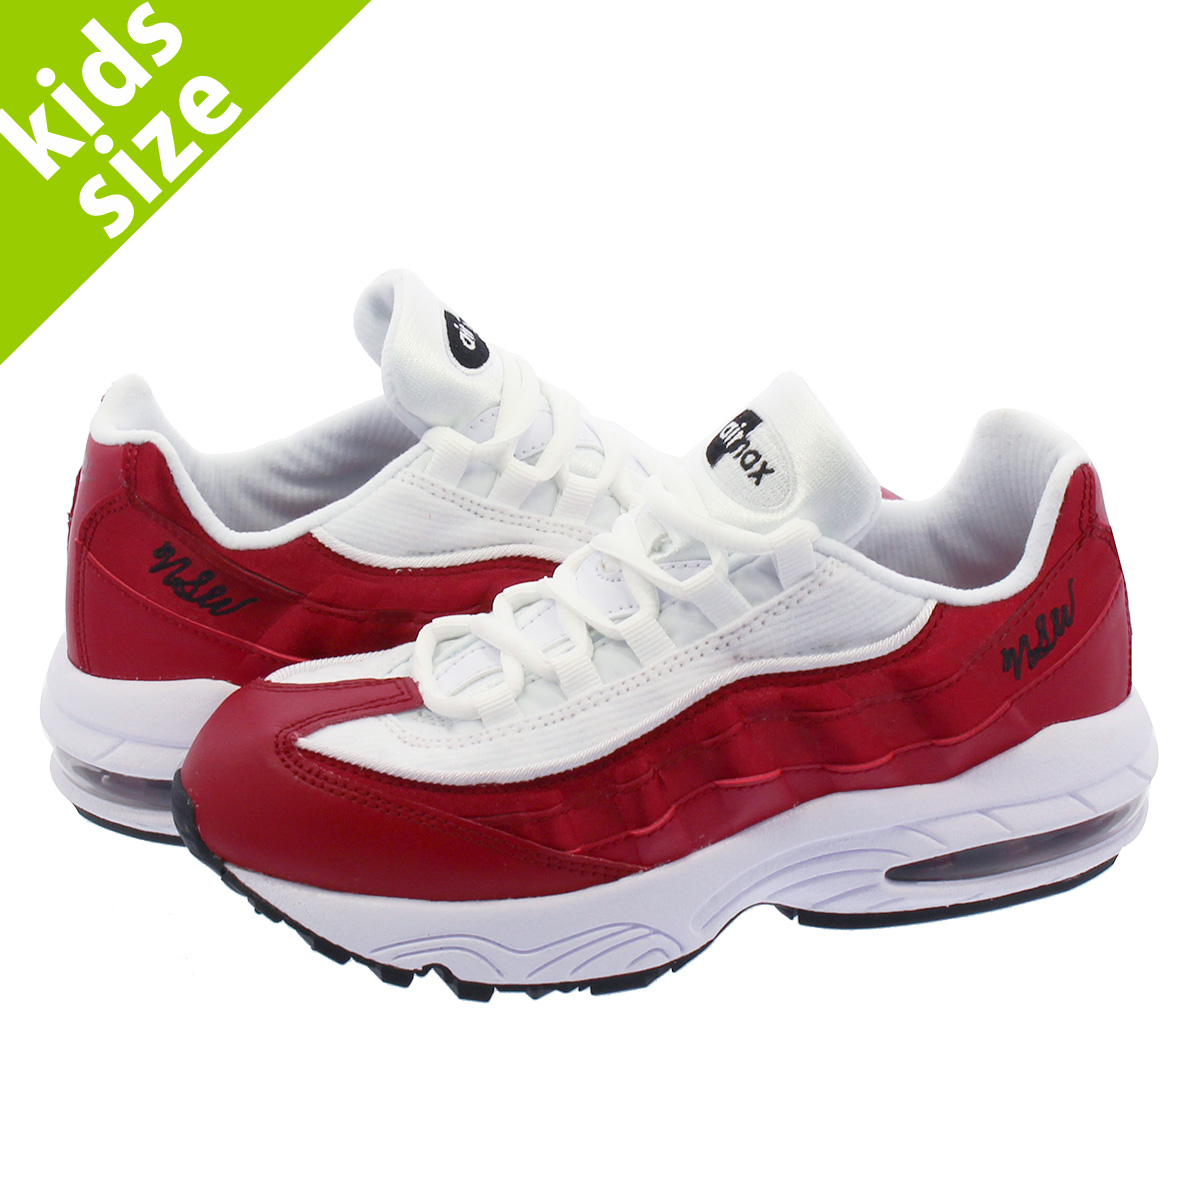 NIKE AIR MAX 95 SE PS Kie Ney AMAX SE PS RED CRUSHWHITEBLACK ao9211 600